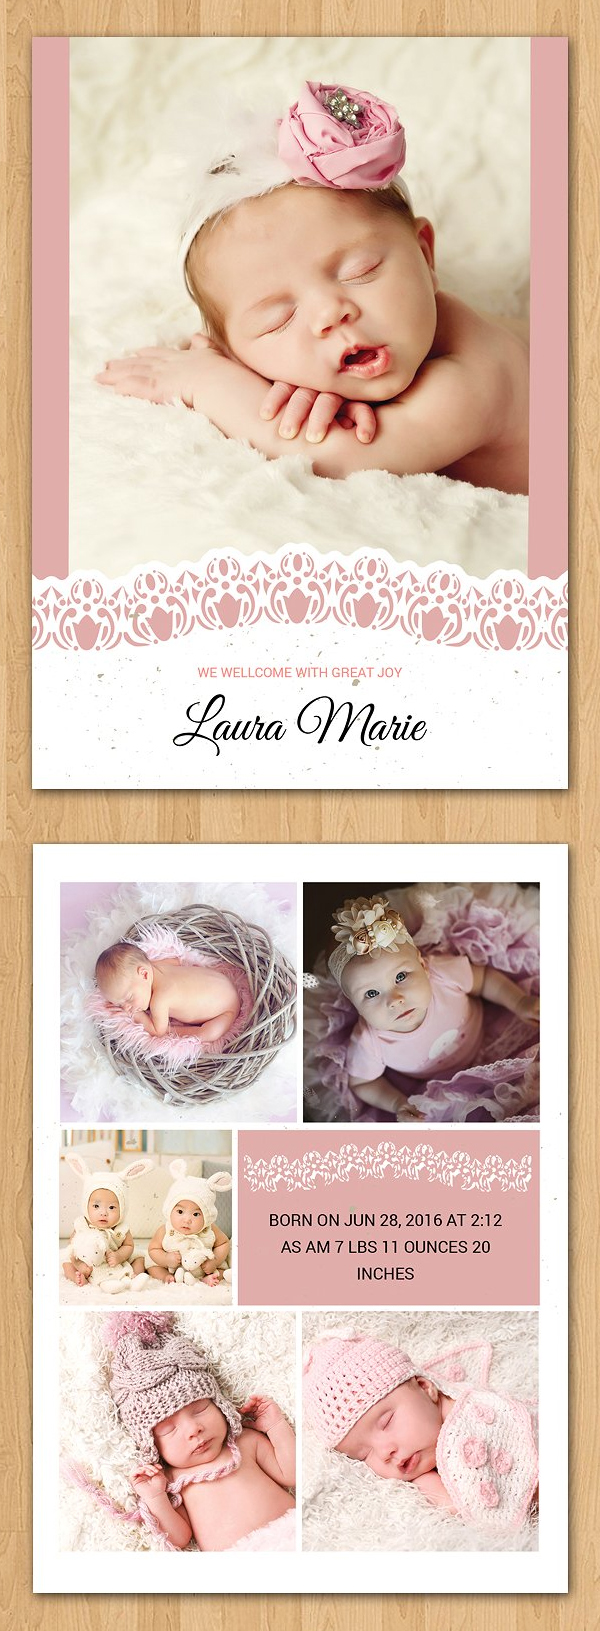 Birth Announcement Template-V10